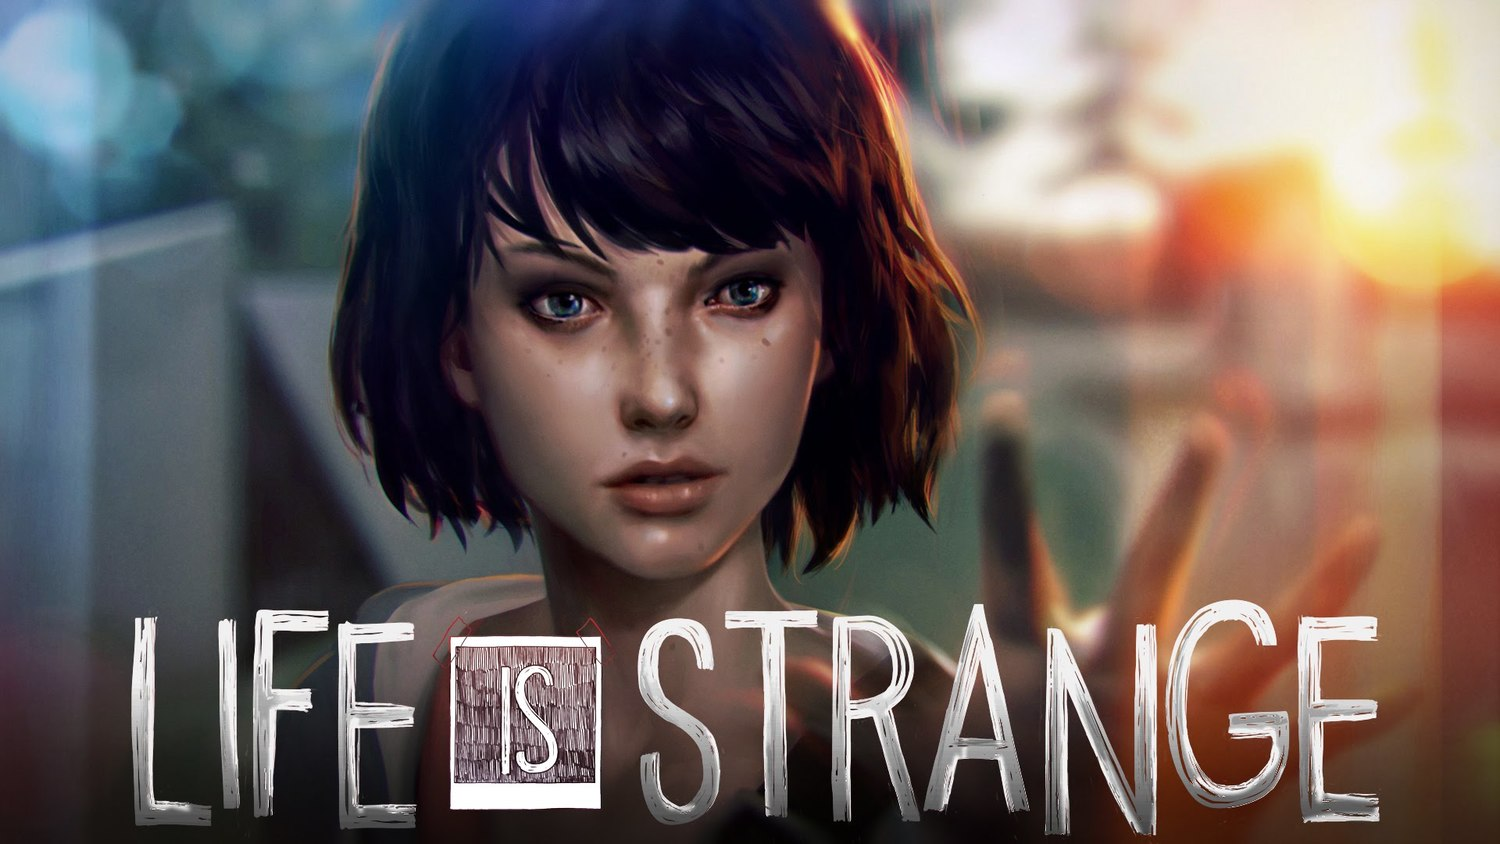 'Life is Strange': hit video game becomes live-action series